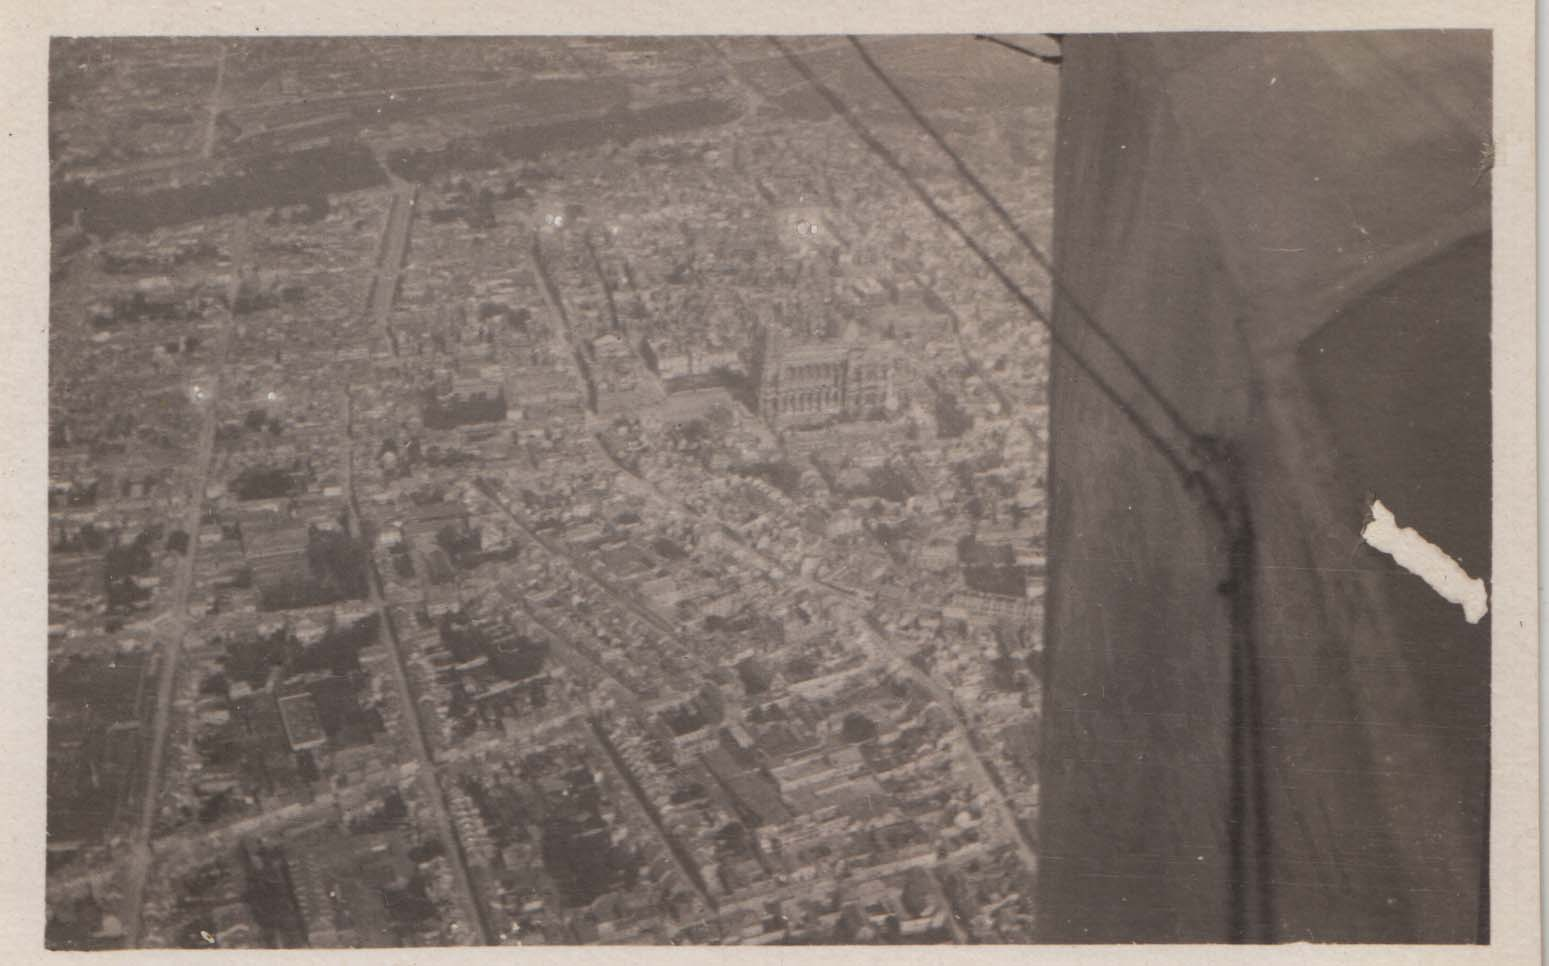 0425 Overview of the city from plane